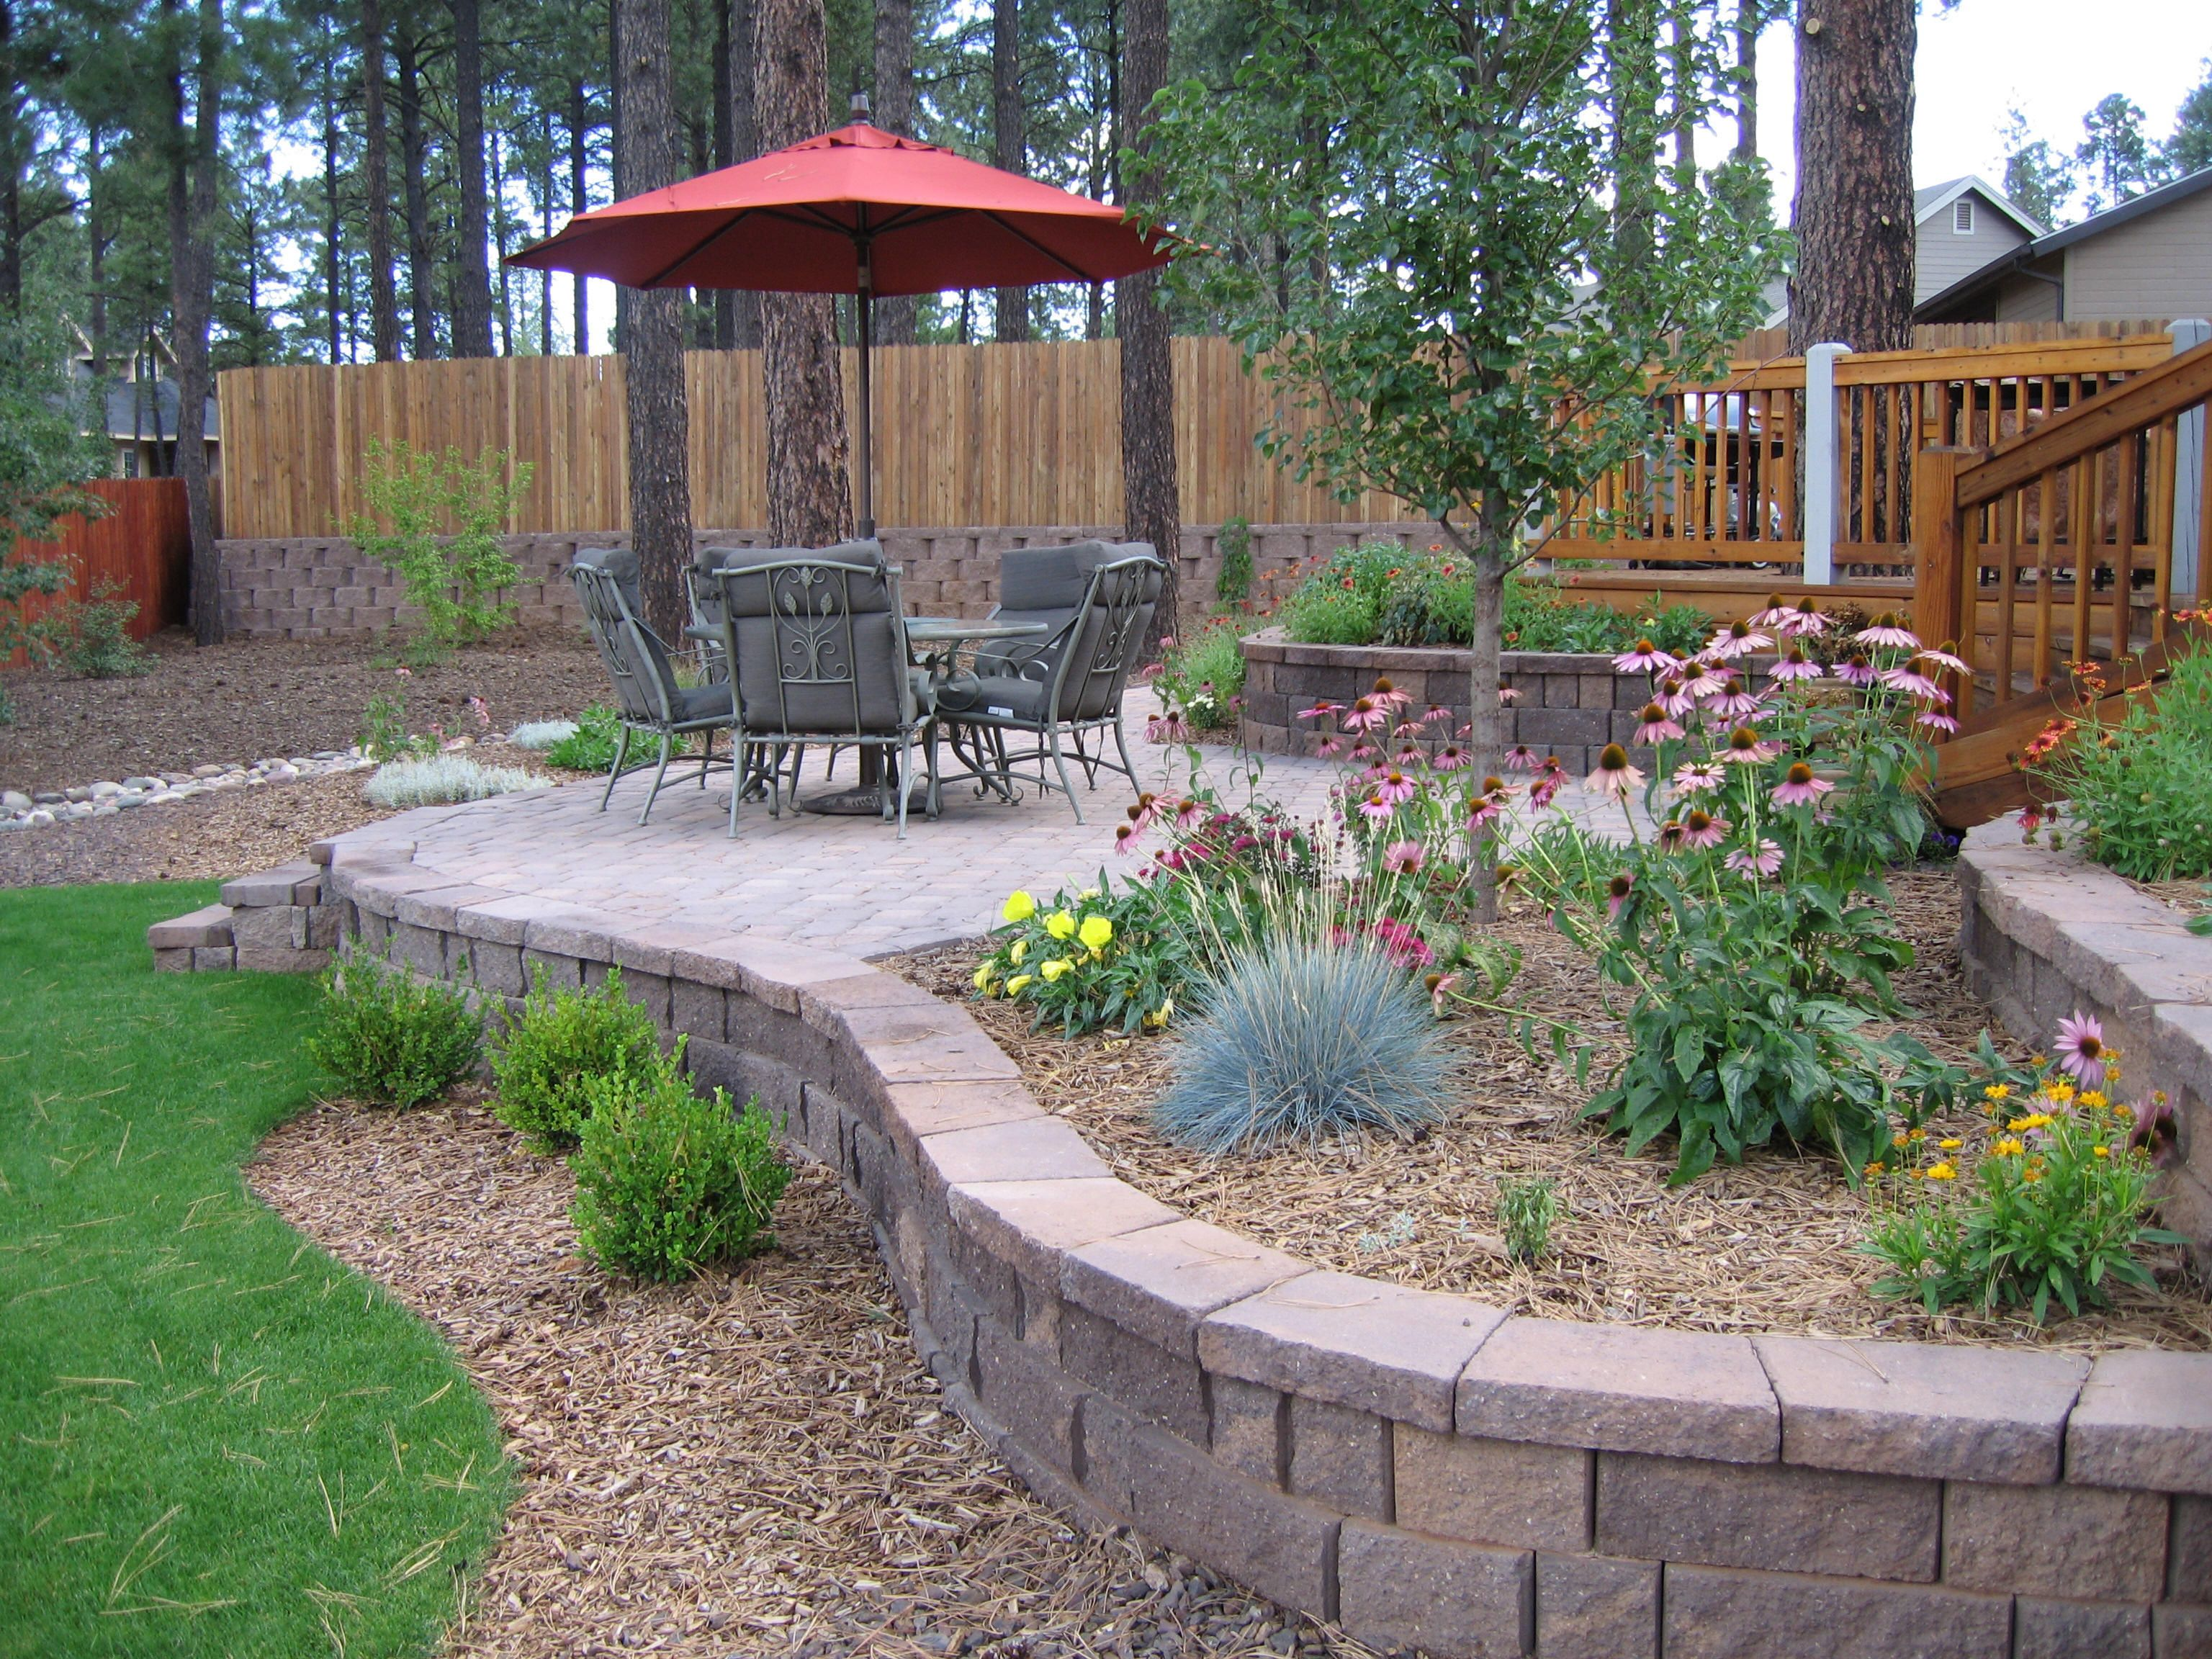 gardening landscaping nice backyard landscape ideas best backyard landscape ideas landscaping backyard ideas kid friendly backyard landscaping ideas - Landscape Design Ideas For Small Backyards